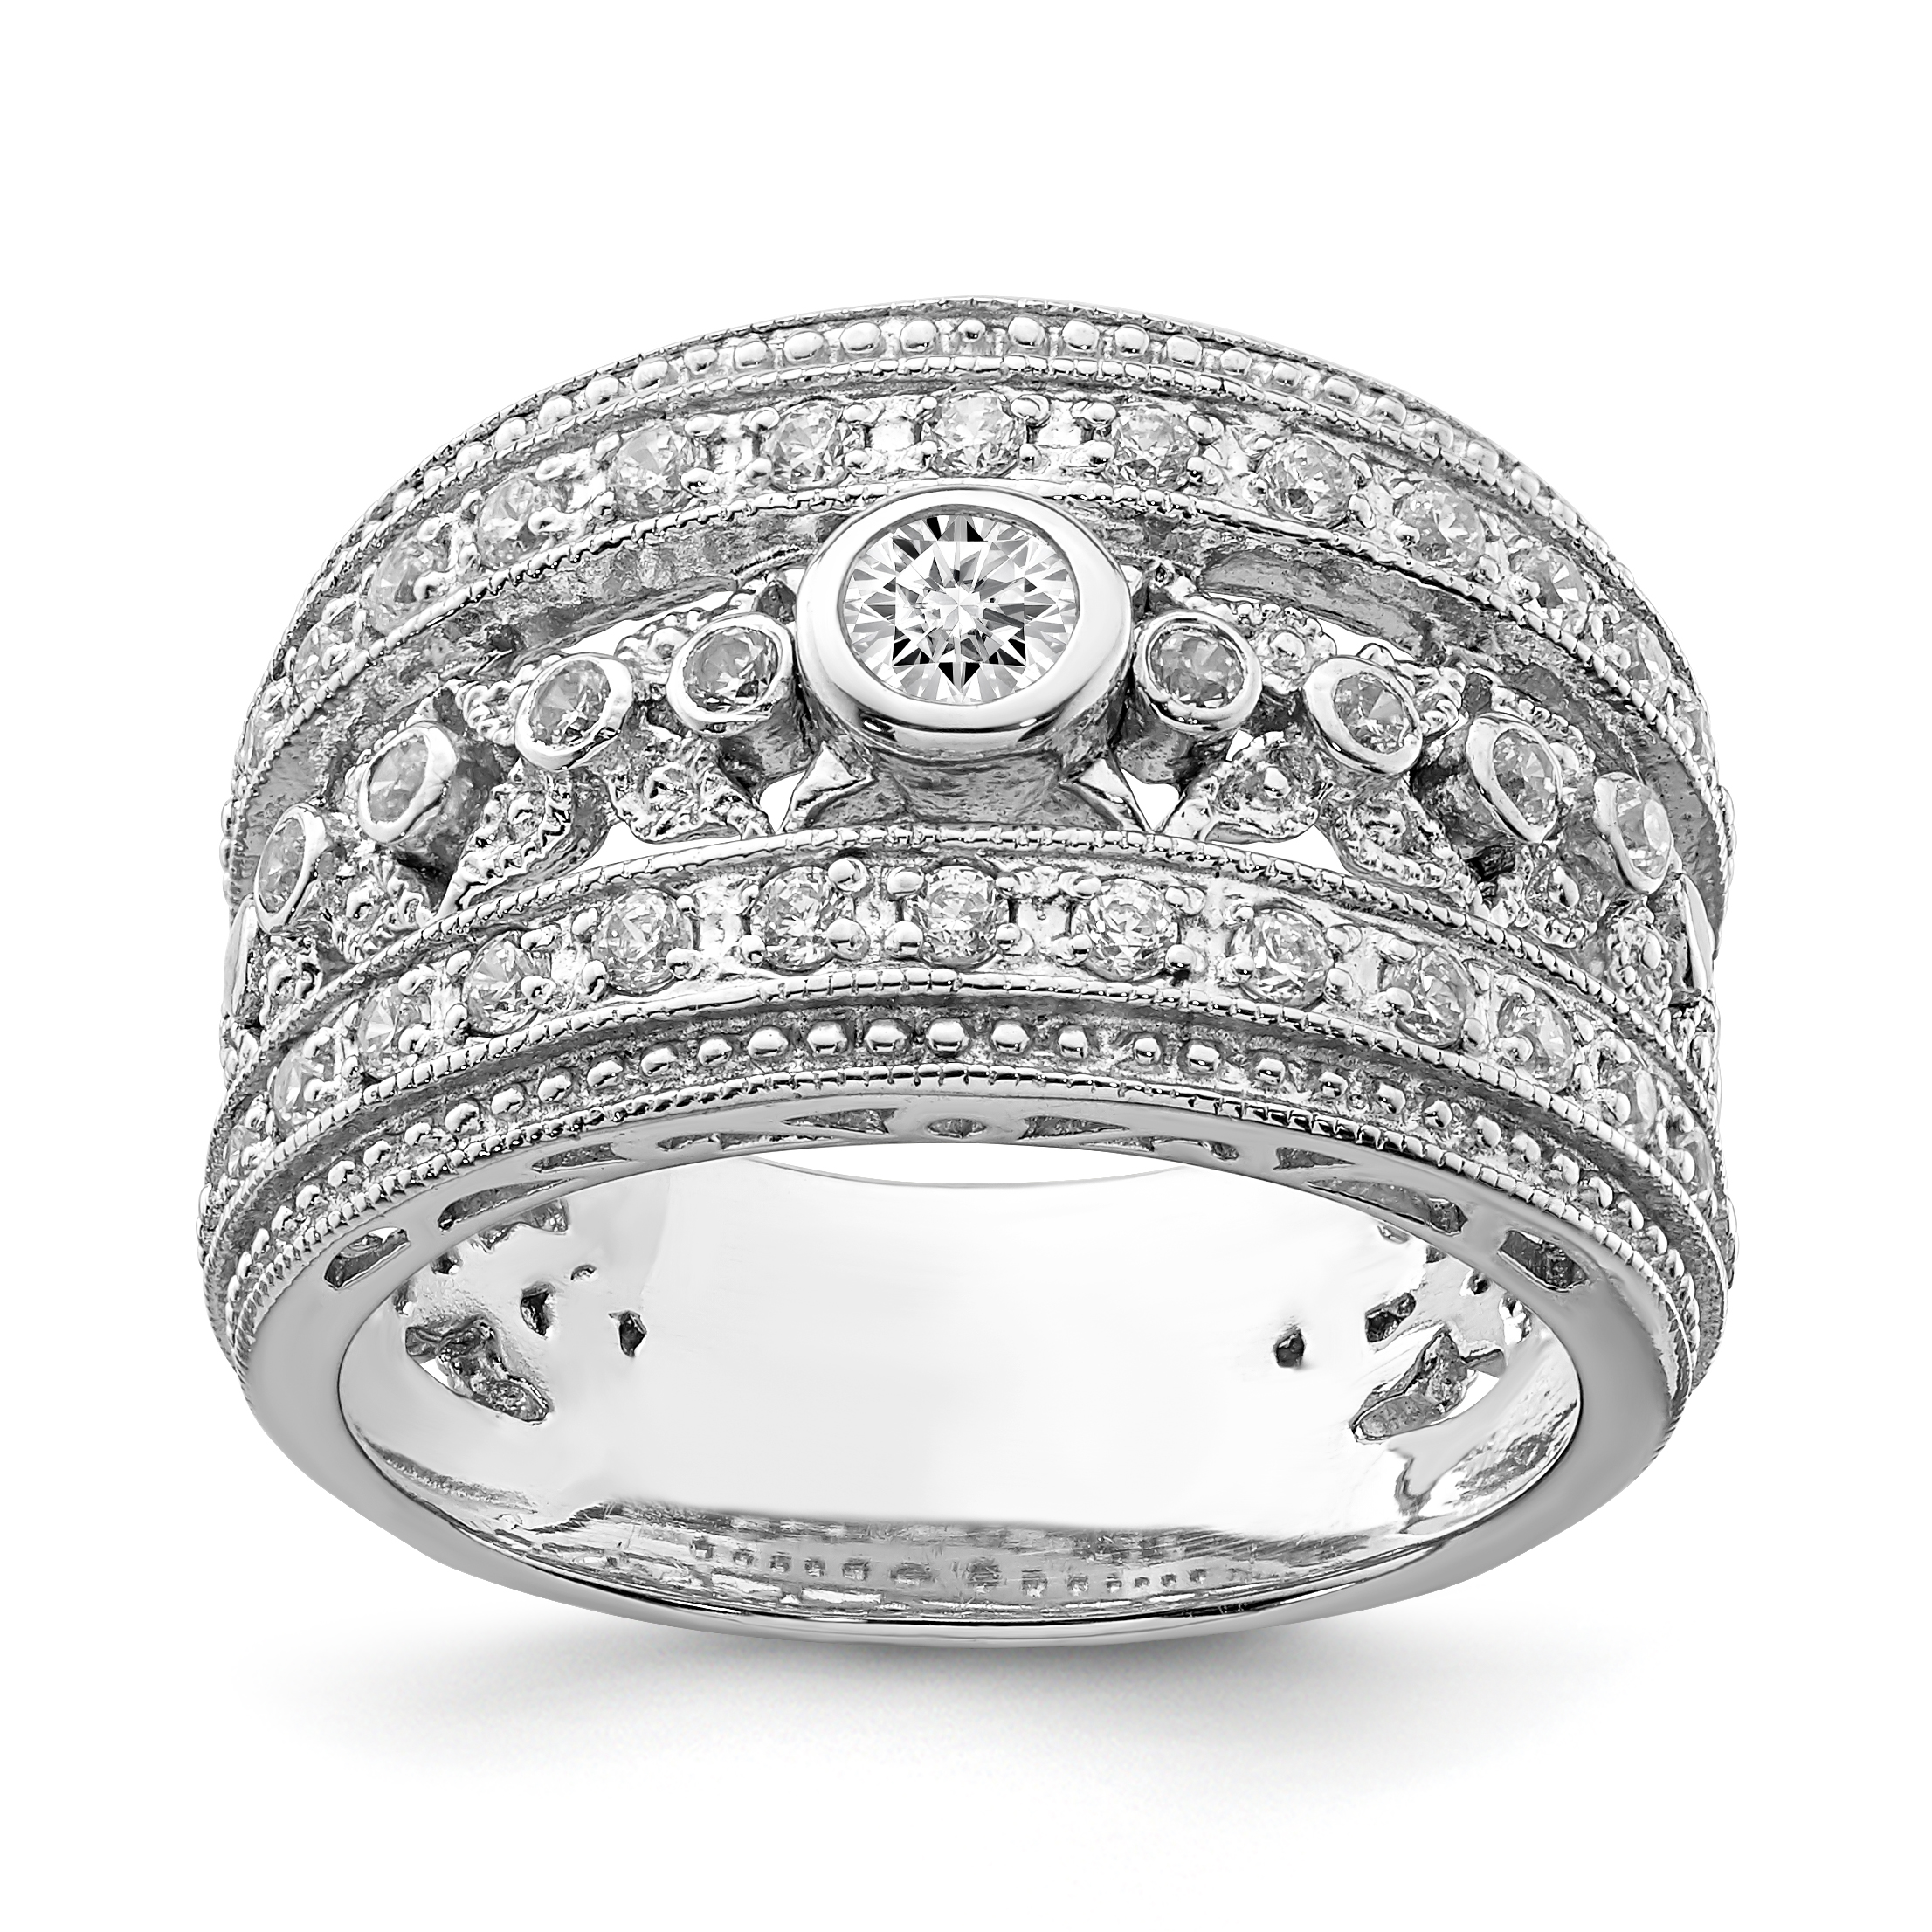 925 Sterling Silver Cubic Zirconia Cz Band Ring Size 8.00 Fine Jewelry Gifts For Women For Her - image 3 of 3